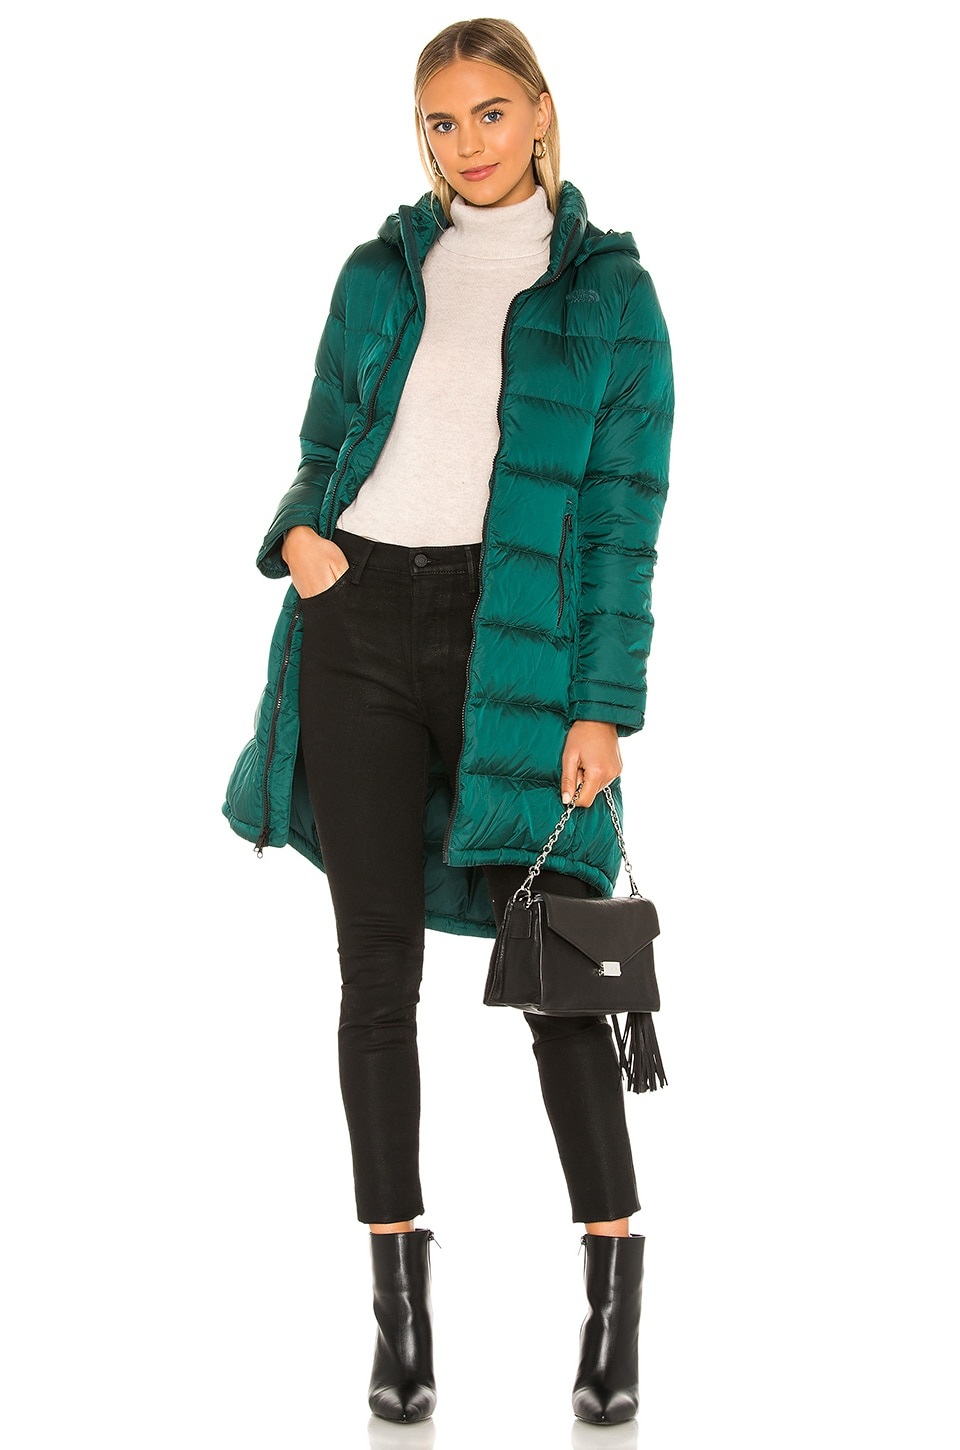 The North Face Metropolis Parka III in Ponderosa Green